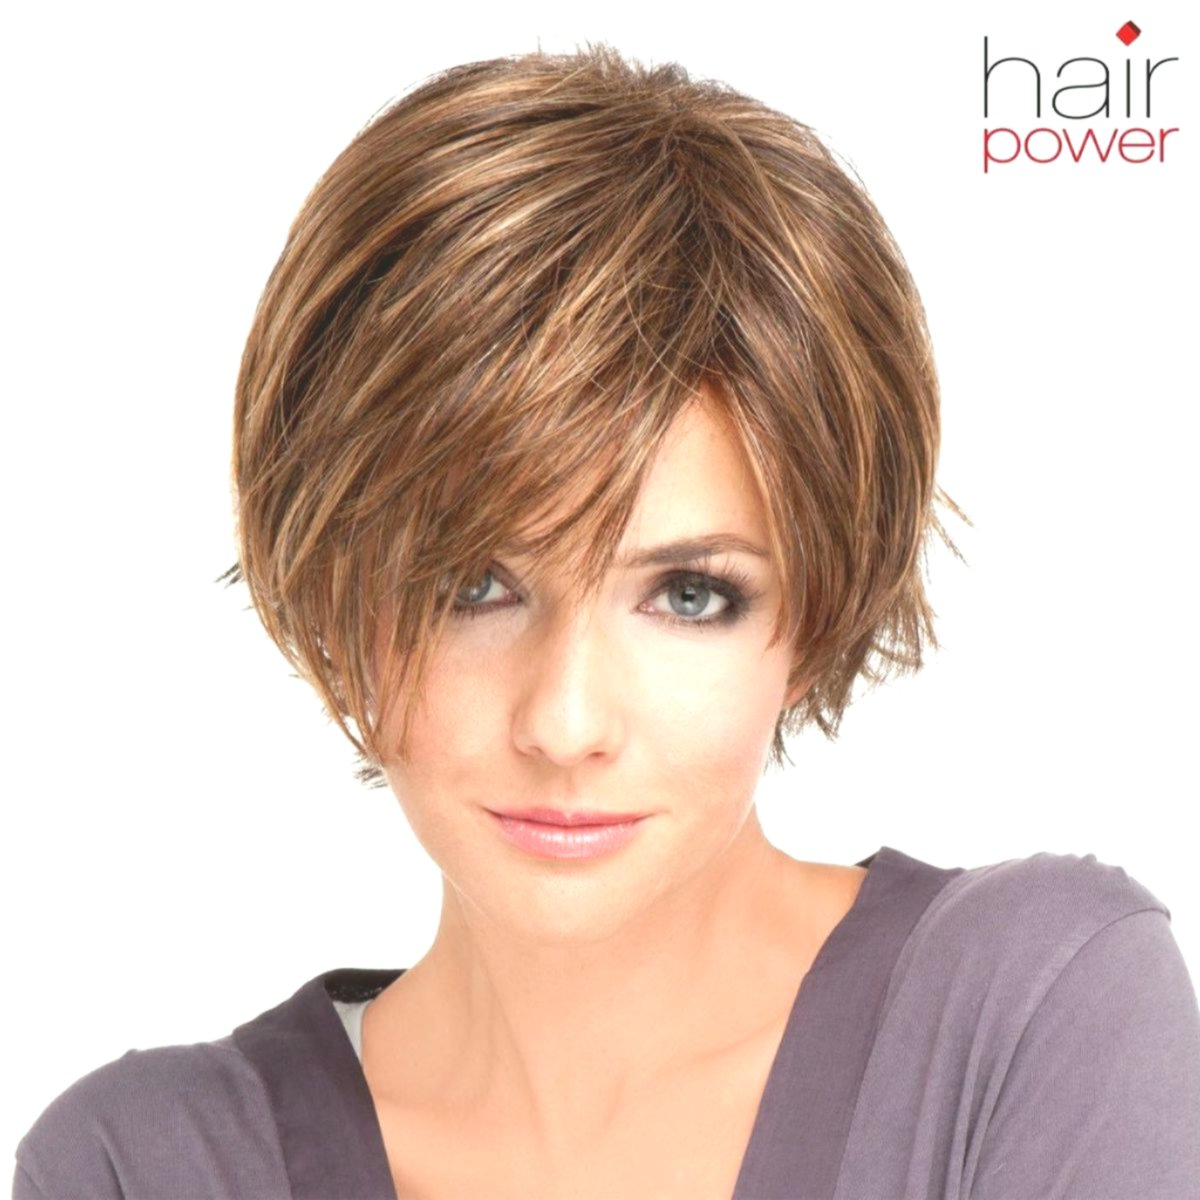 Latest cool short hairstyles women's collection-Superb Cool Short Hairstyles Women's Decor